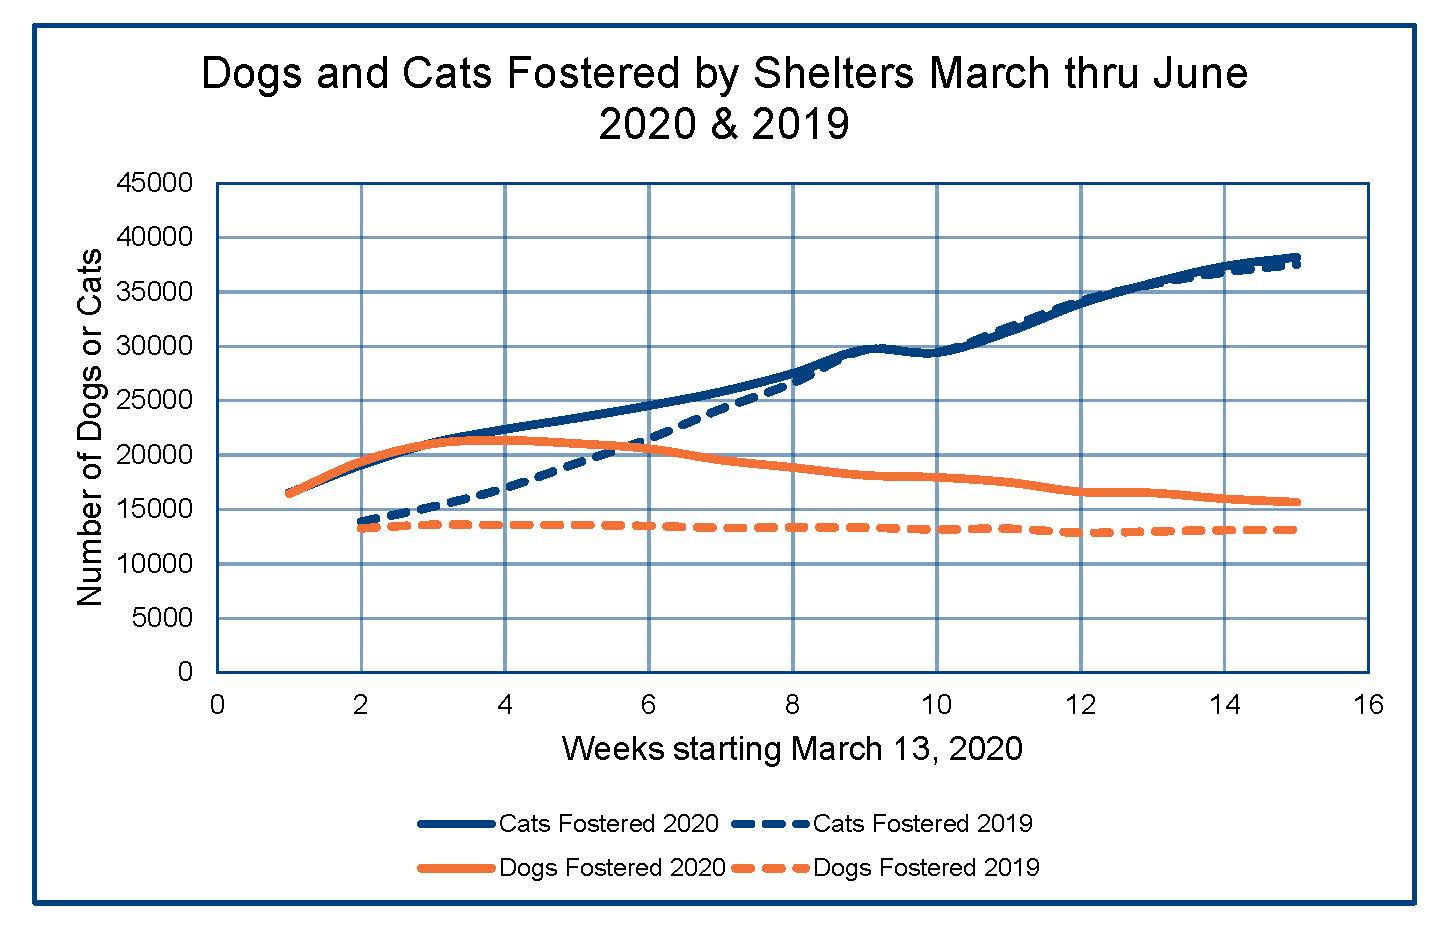 Dogs and Cats Fostered by Shelters march thru June 2020 & 2019